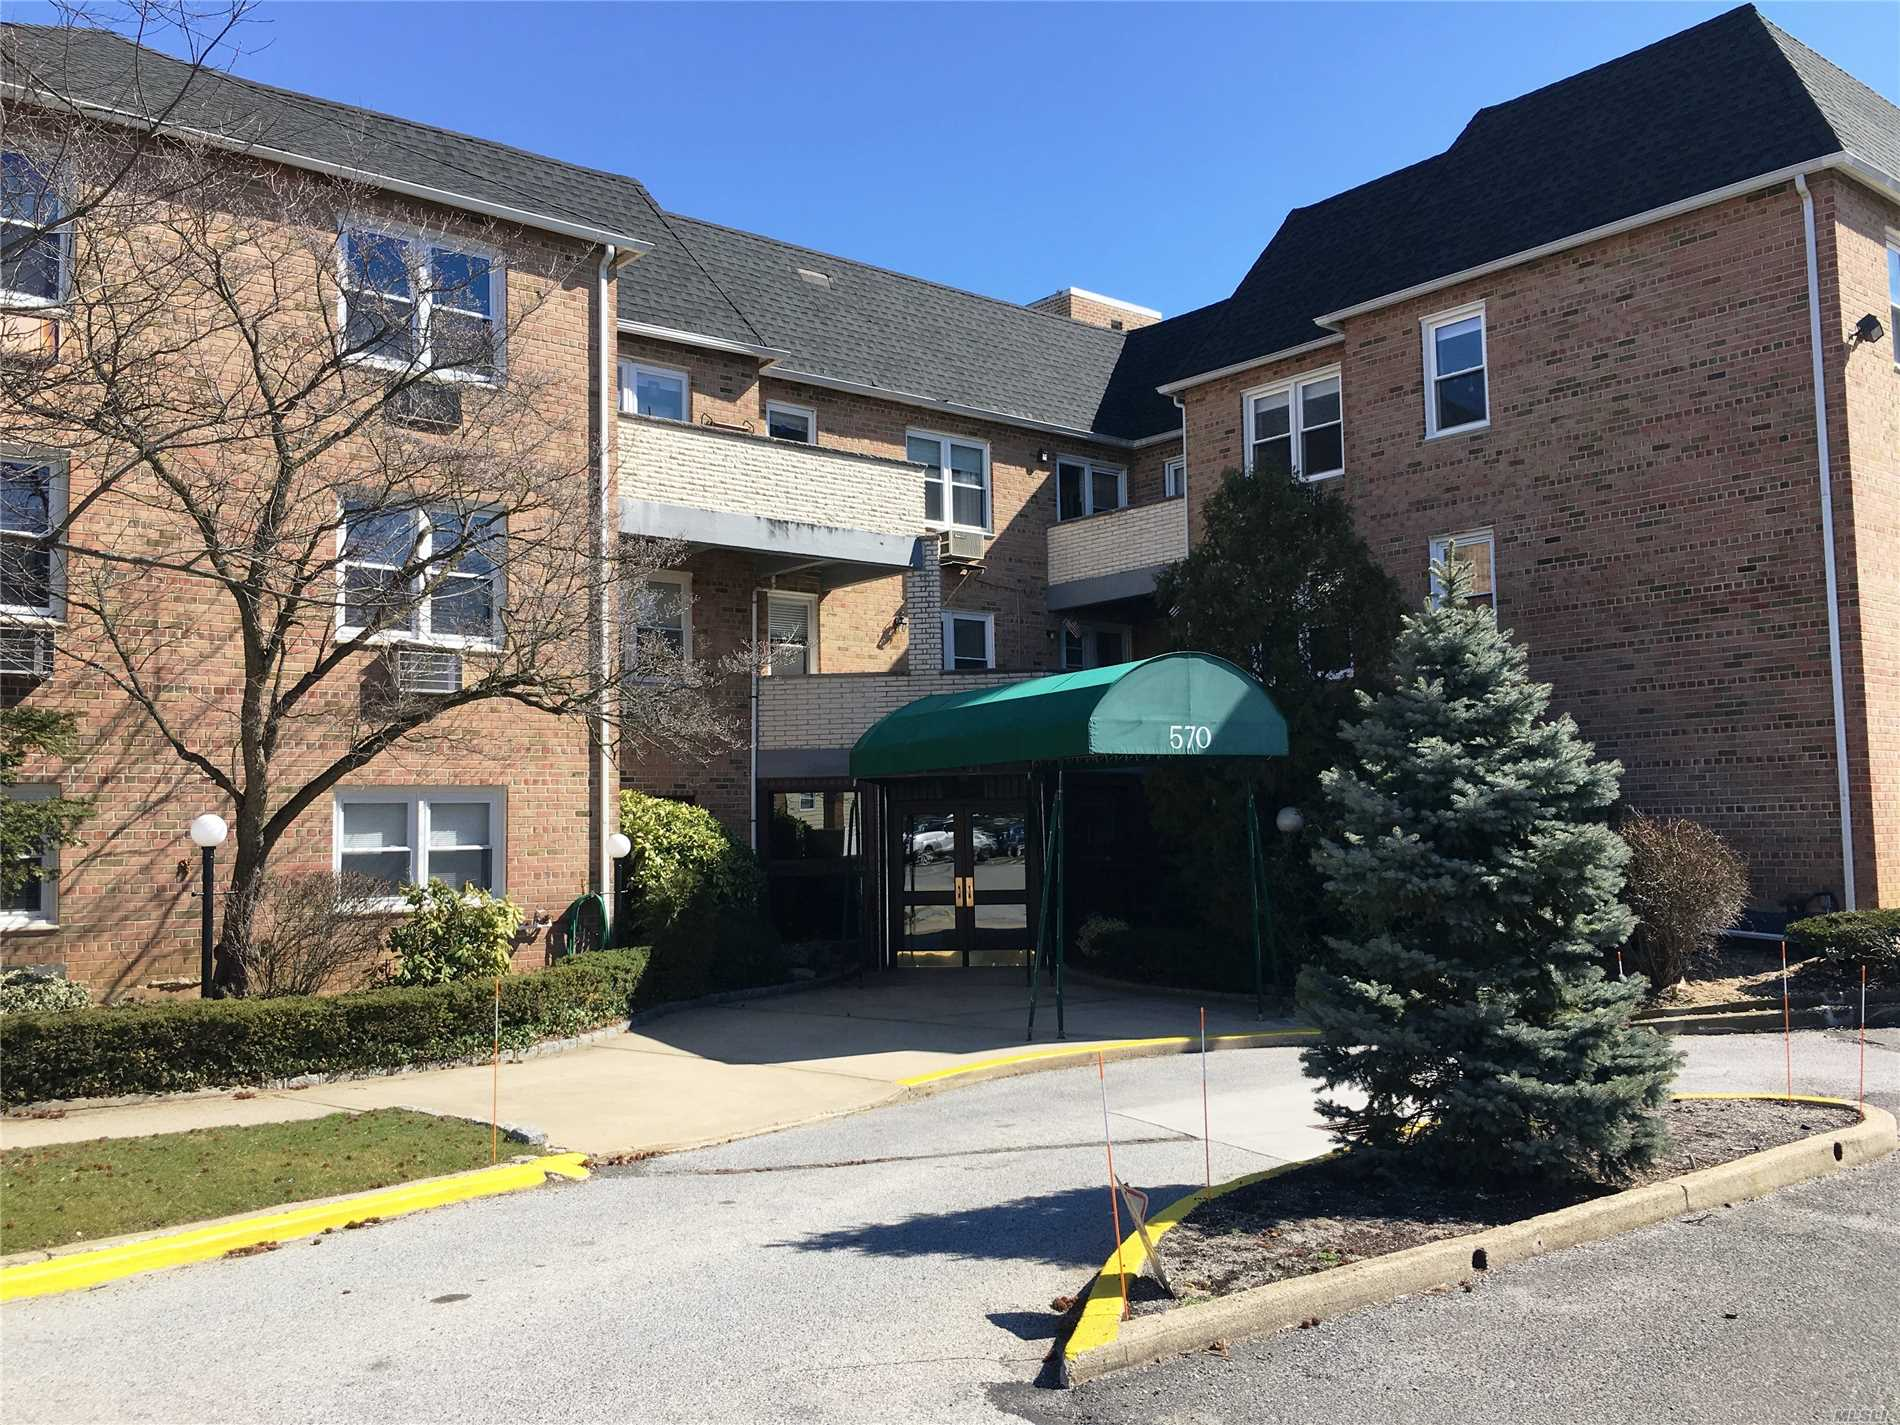 2 Bedroom 1 Bath Condo In Excellent Condition. Updated Kitchen And Bath. Private Terrace. Hardwood Floors, Ample Closet Space With Storage, Garage Parking, Inground Pool, Gym And Laundry. Close To All Amenities.